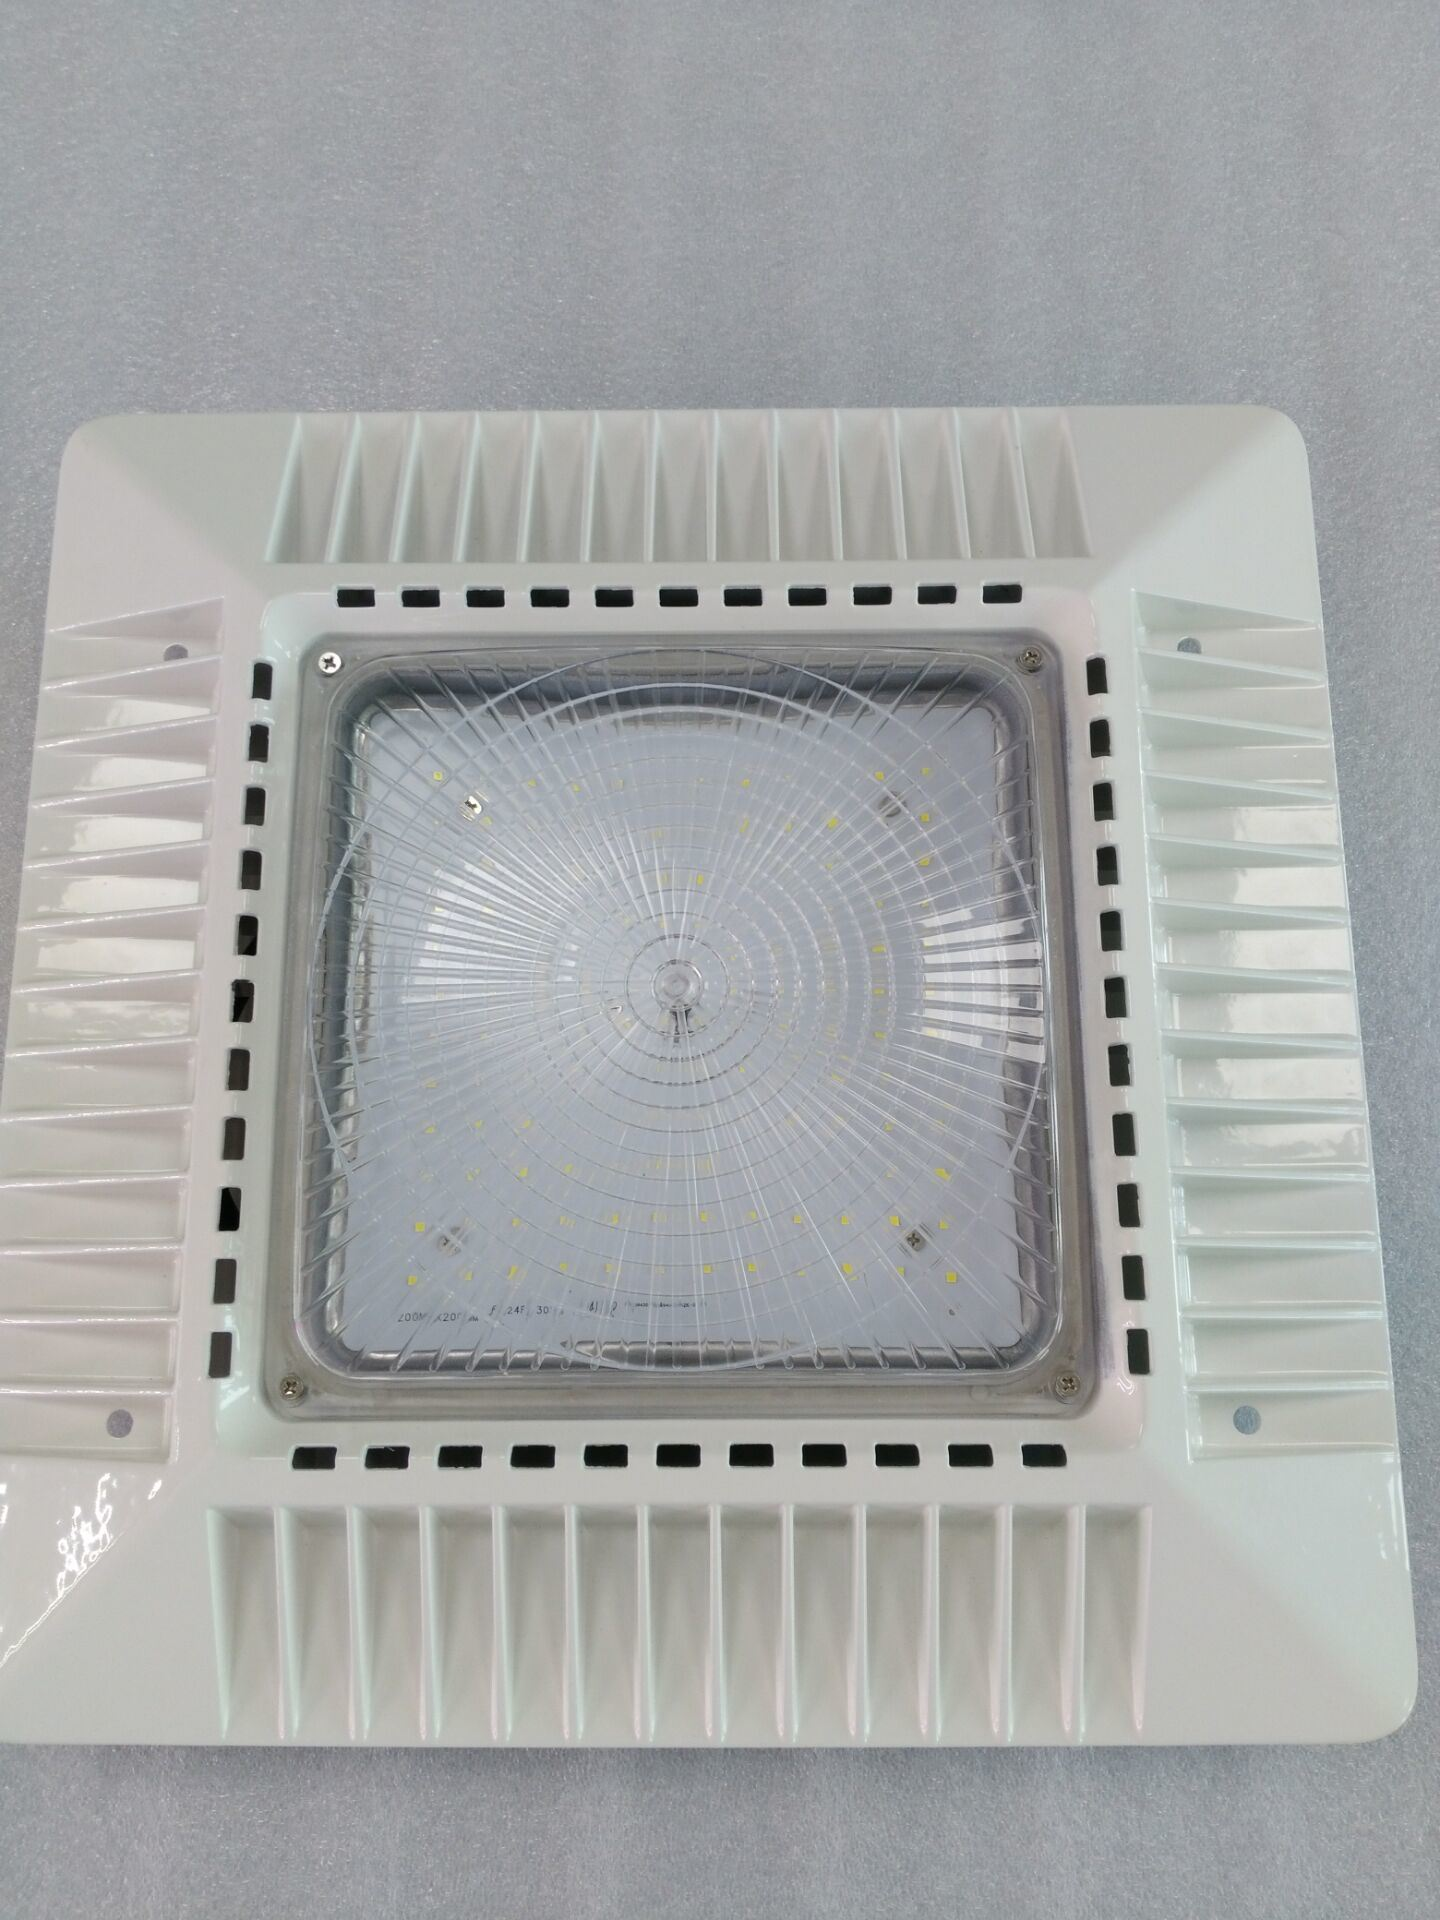 cUL UL Approved Gas Station Lighting 150W 240W LED Canopy Light Fixture